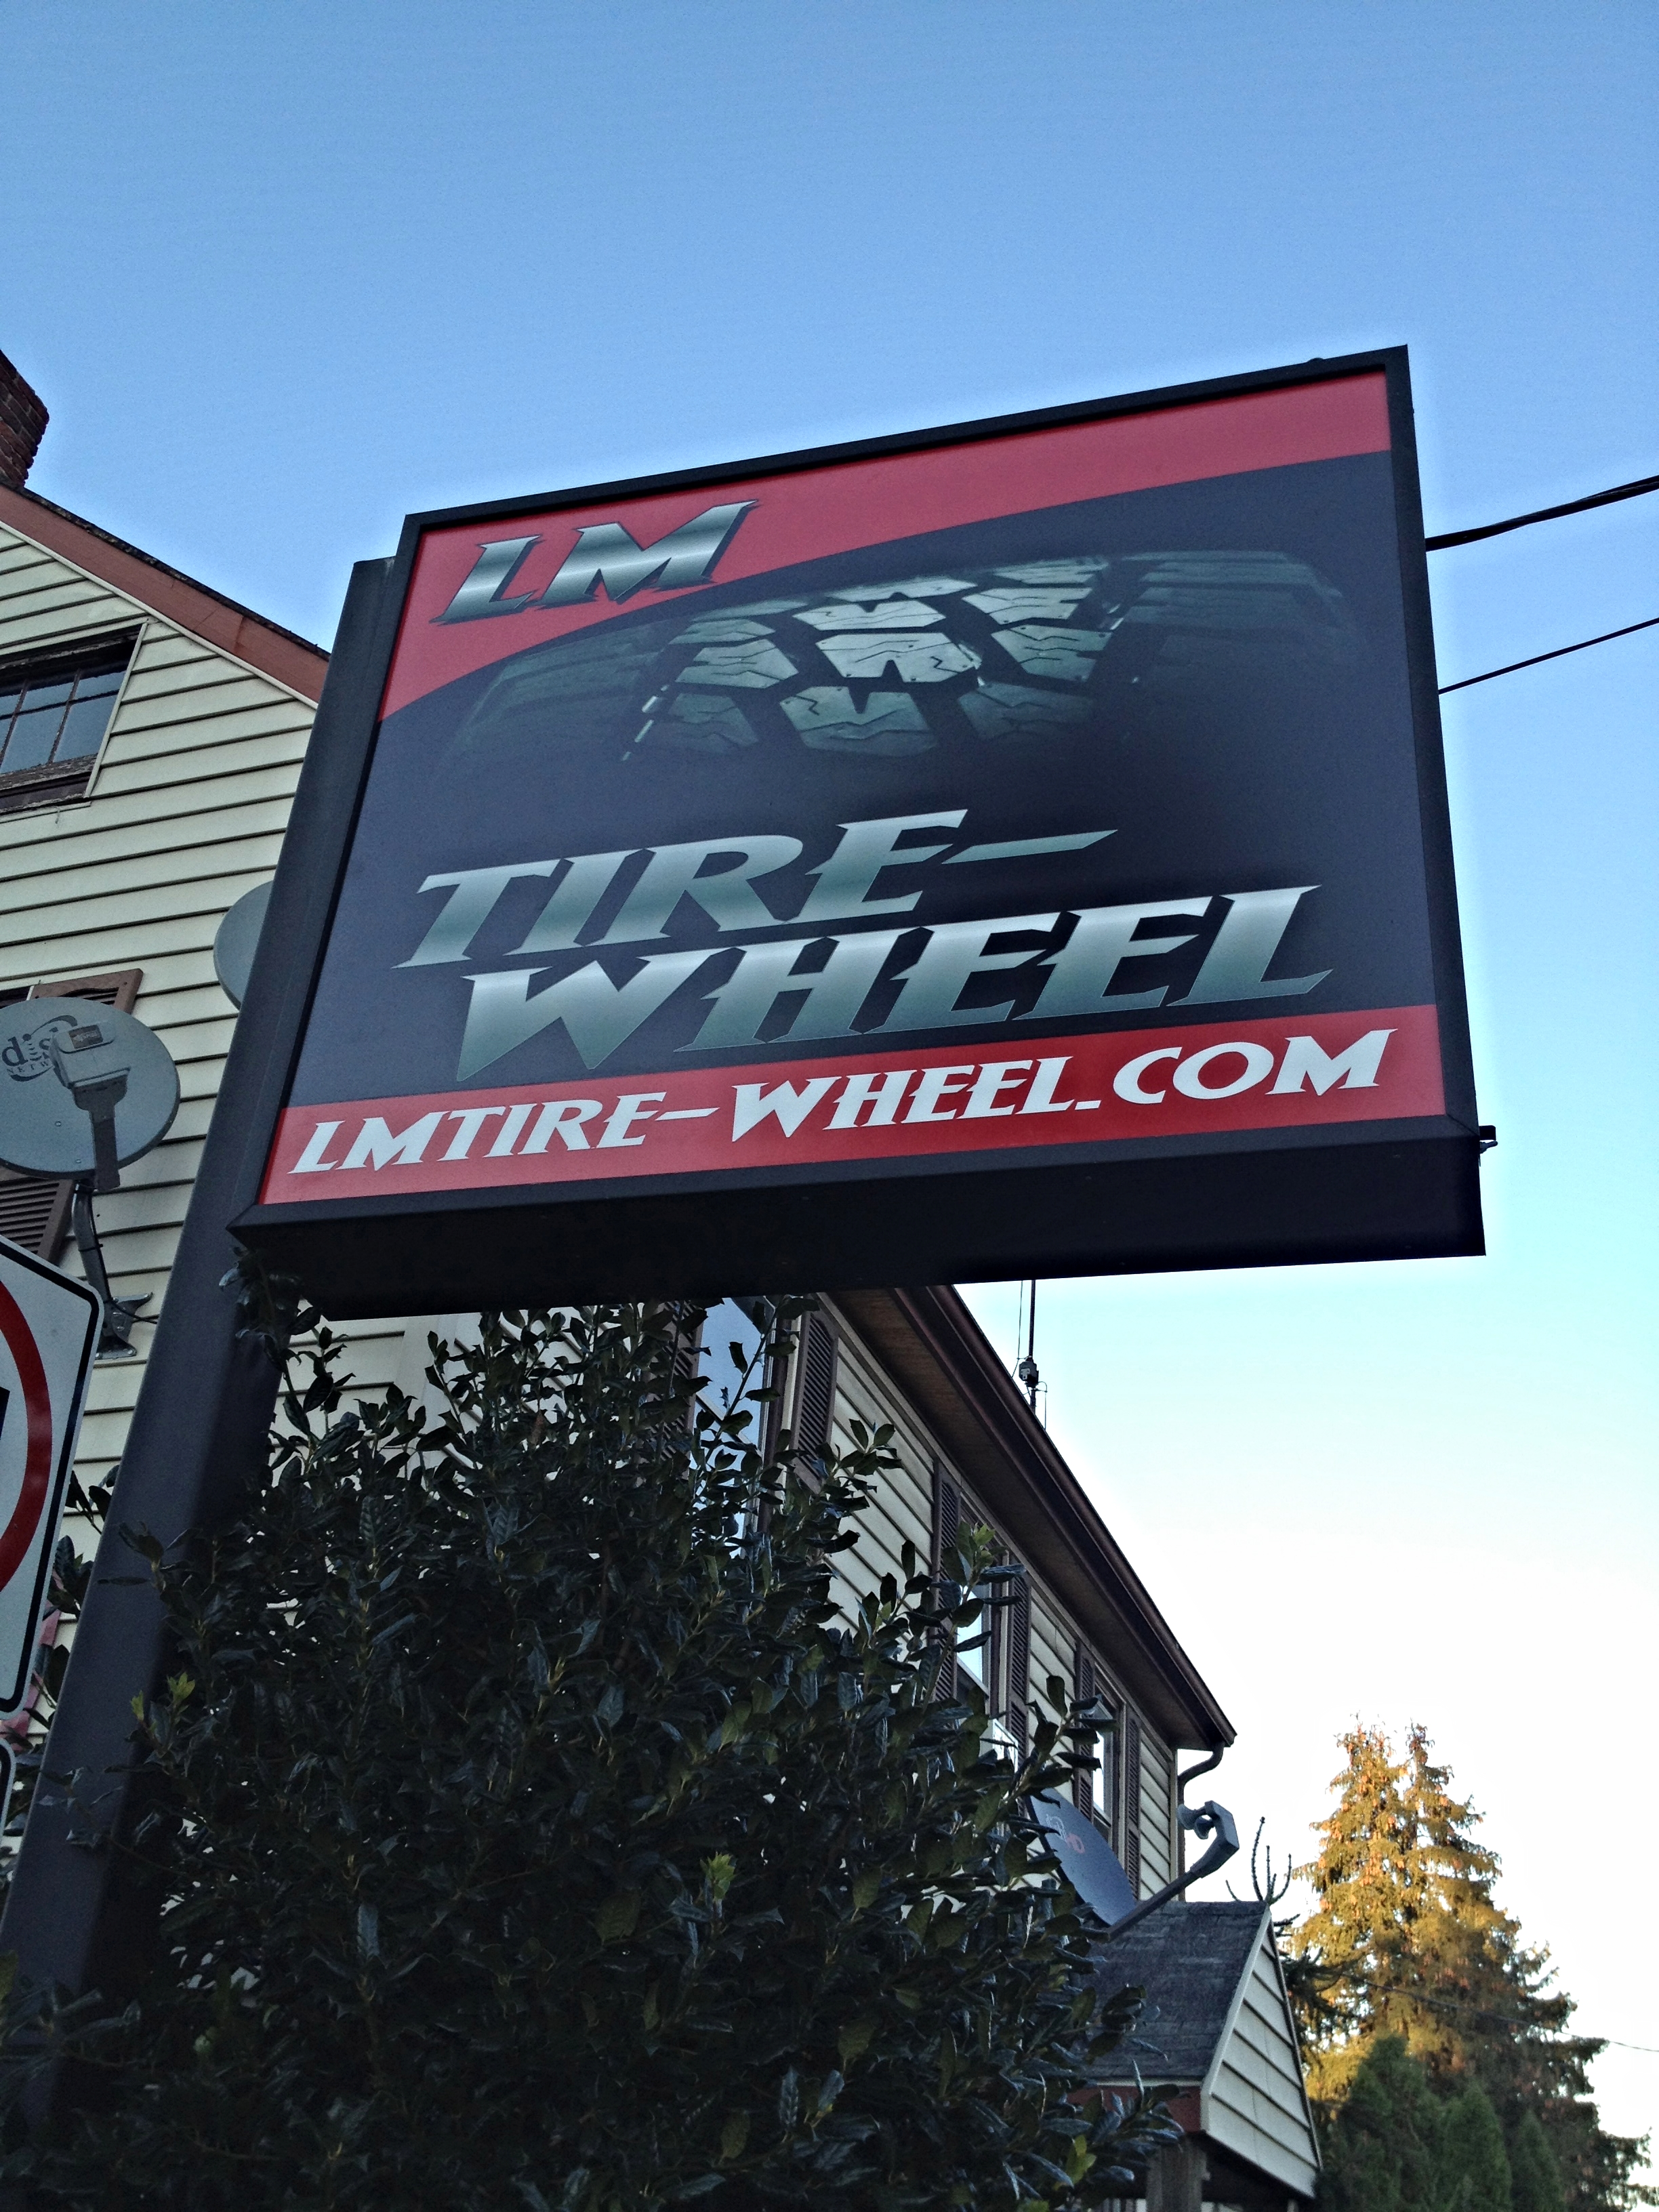 Signs | L&M Tire & Wheel Sign | Abbottstown, PA